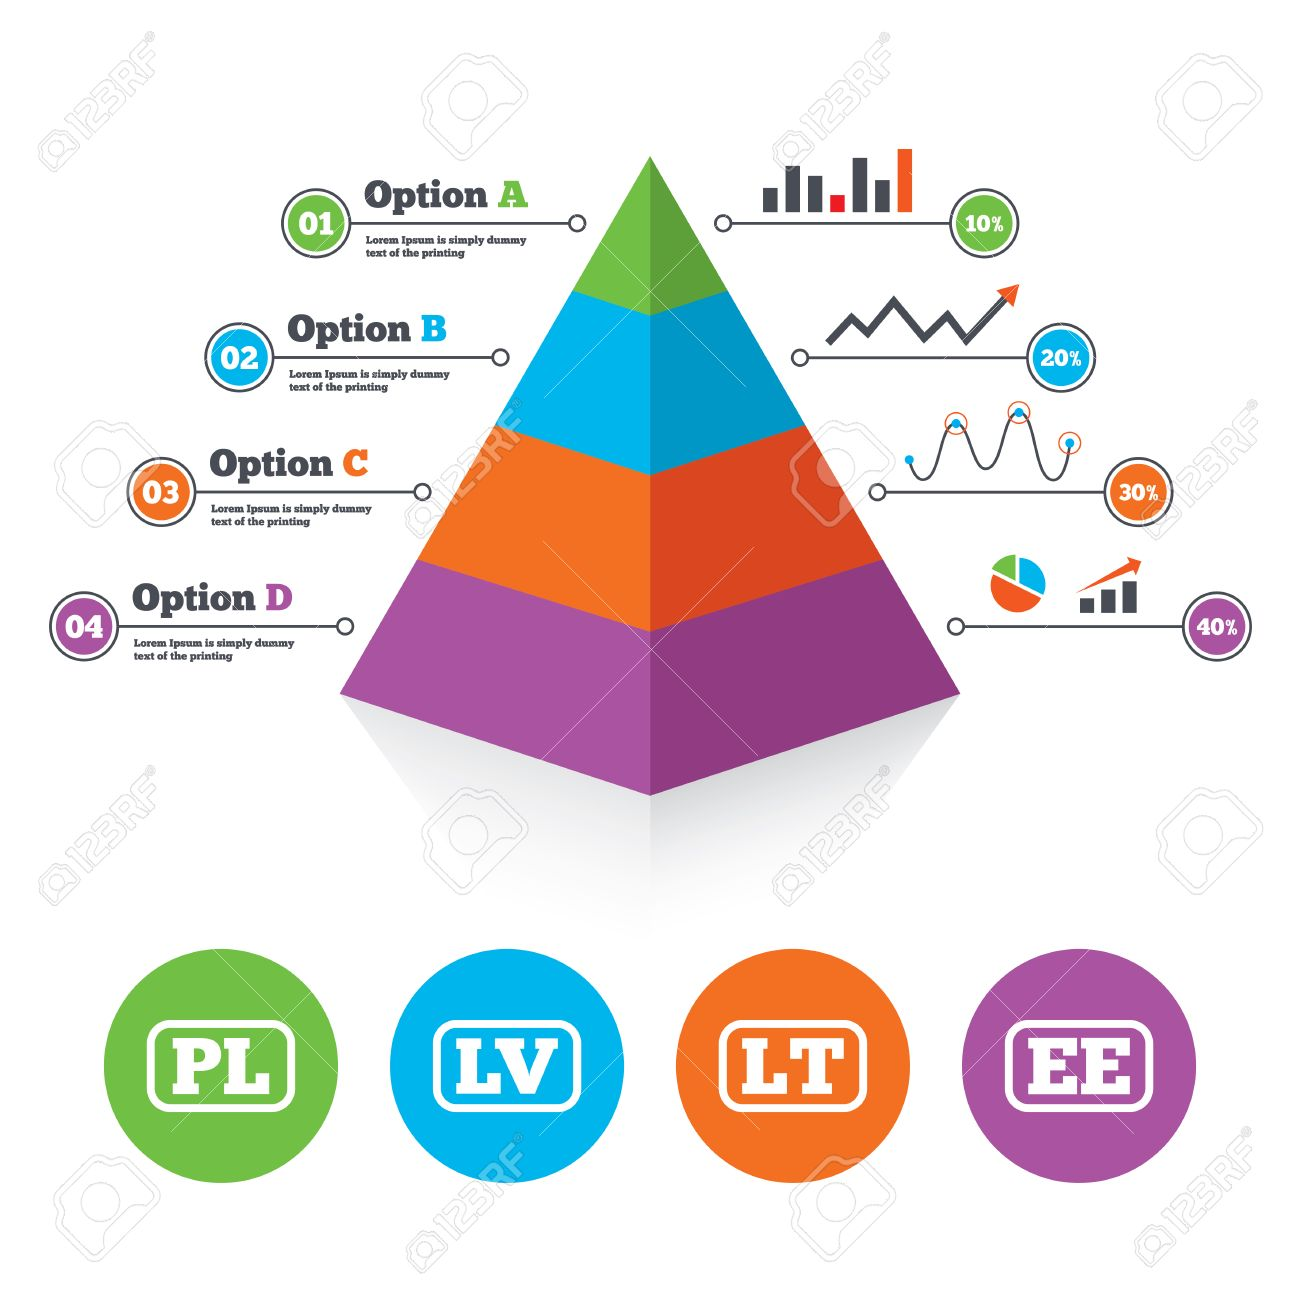 hight resolution of pyramid chart template language icons pl lv lt and ee translation symbols